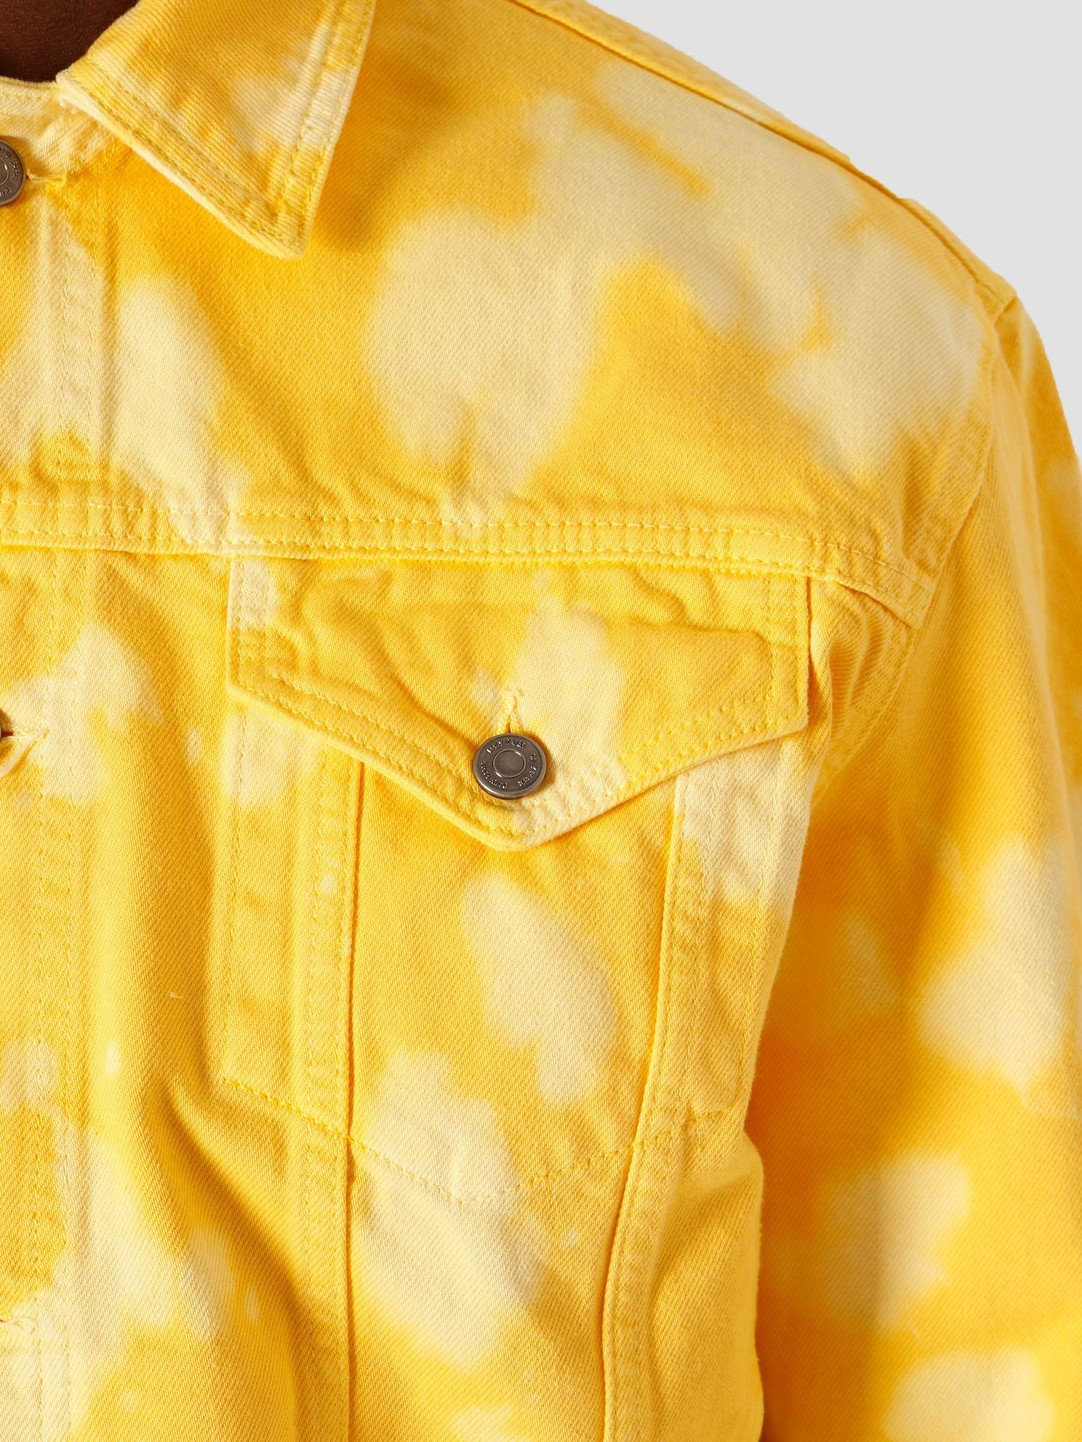 Daily Paper Daily Paper Kardy Jeans Jacket Yellow 2111171